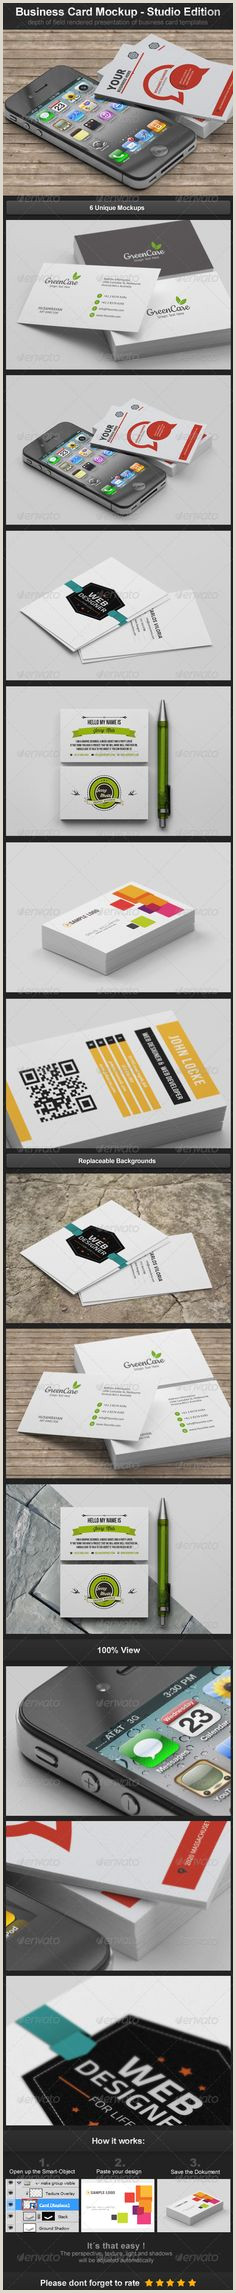 Best Business Cards Video Production 20 Business Card Mockups Images